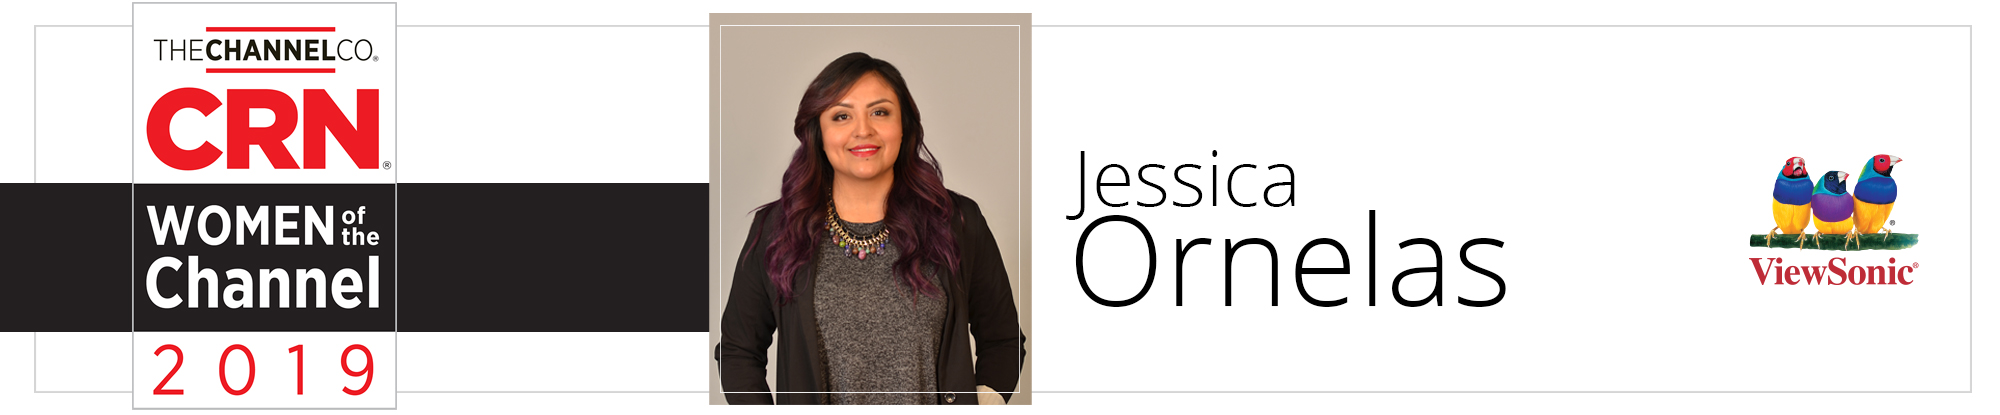 Jessica Ornelas of ViewSonic Honored  as One of CRN's 2019 Women of the Channel